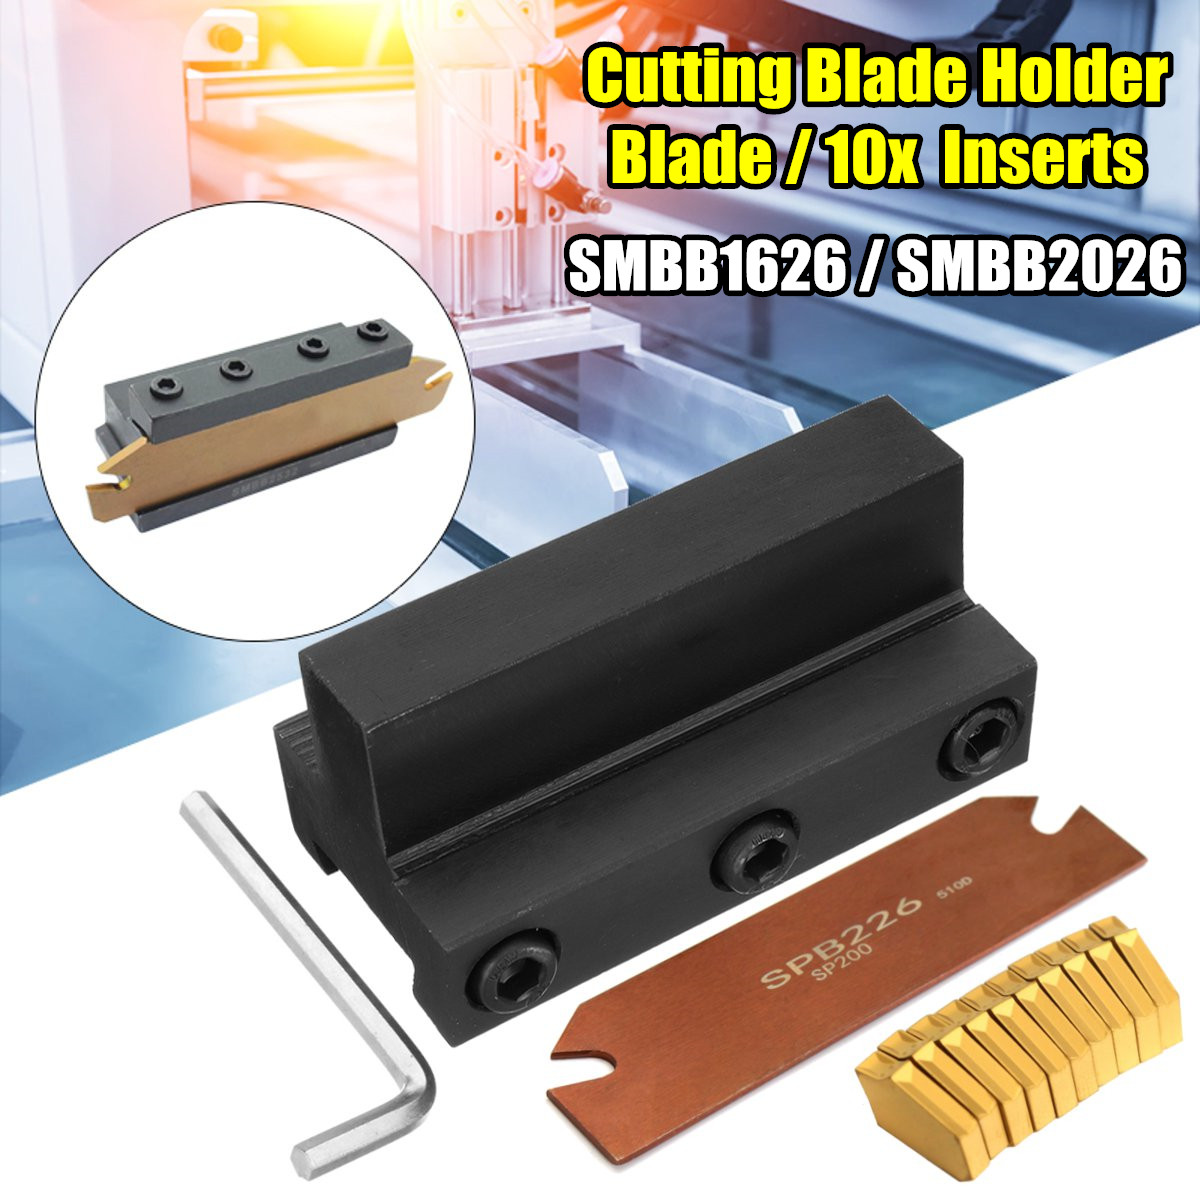 SMBB1626/SMBB2026 Cutting Blade Holder+Cut-Off Cutter Blade Inserts For GTN-2